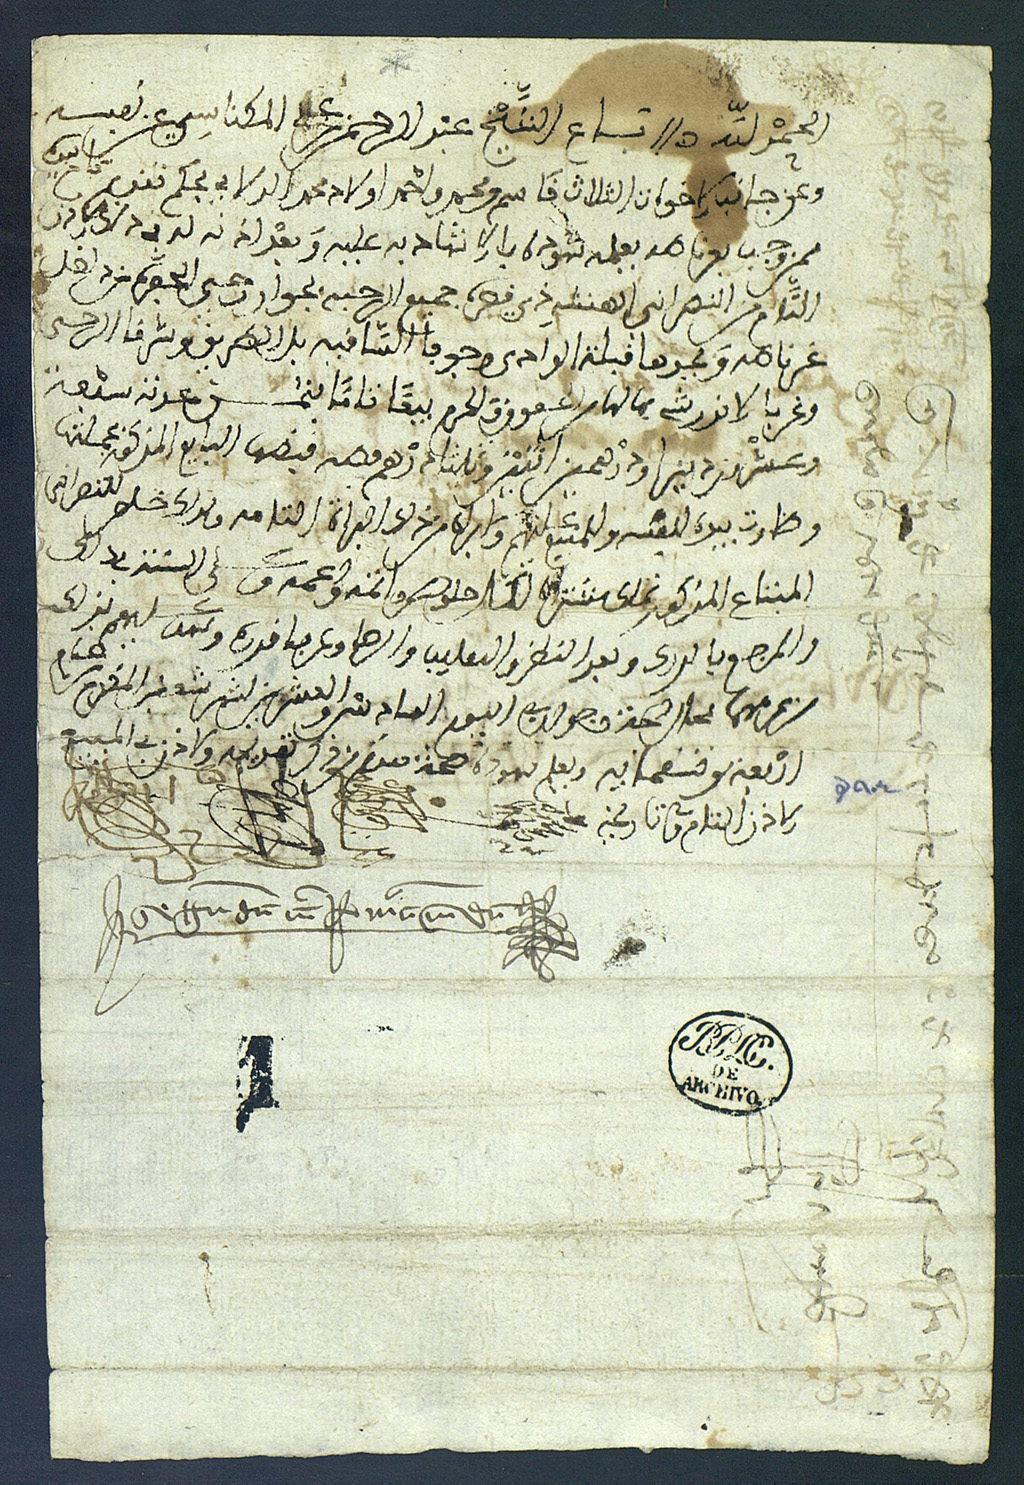 Figure 8.1: Sales contract between Muslim siblings and a Christian, Chabaan 26, 904 (April 8 1499), Documentos Árabes del Archivo Municipal de Granada (1481-1499) © Archivo Municipal de Granada